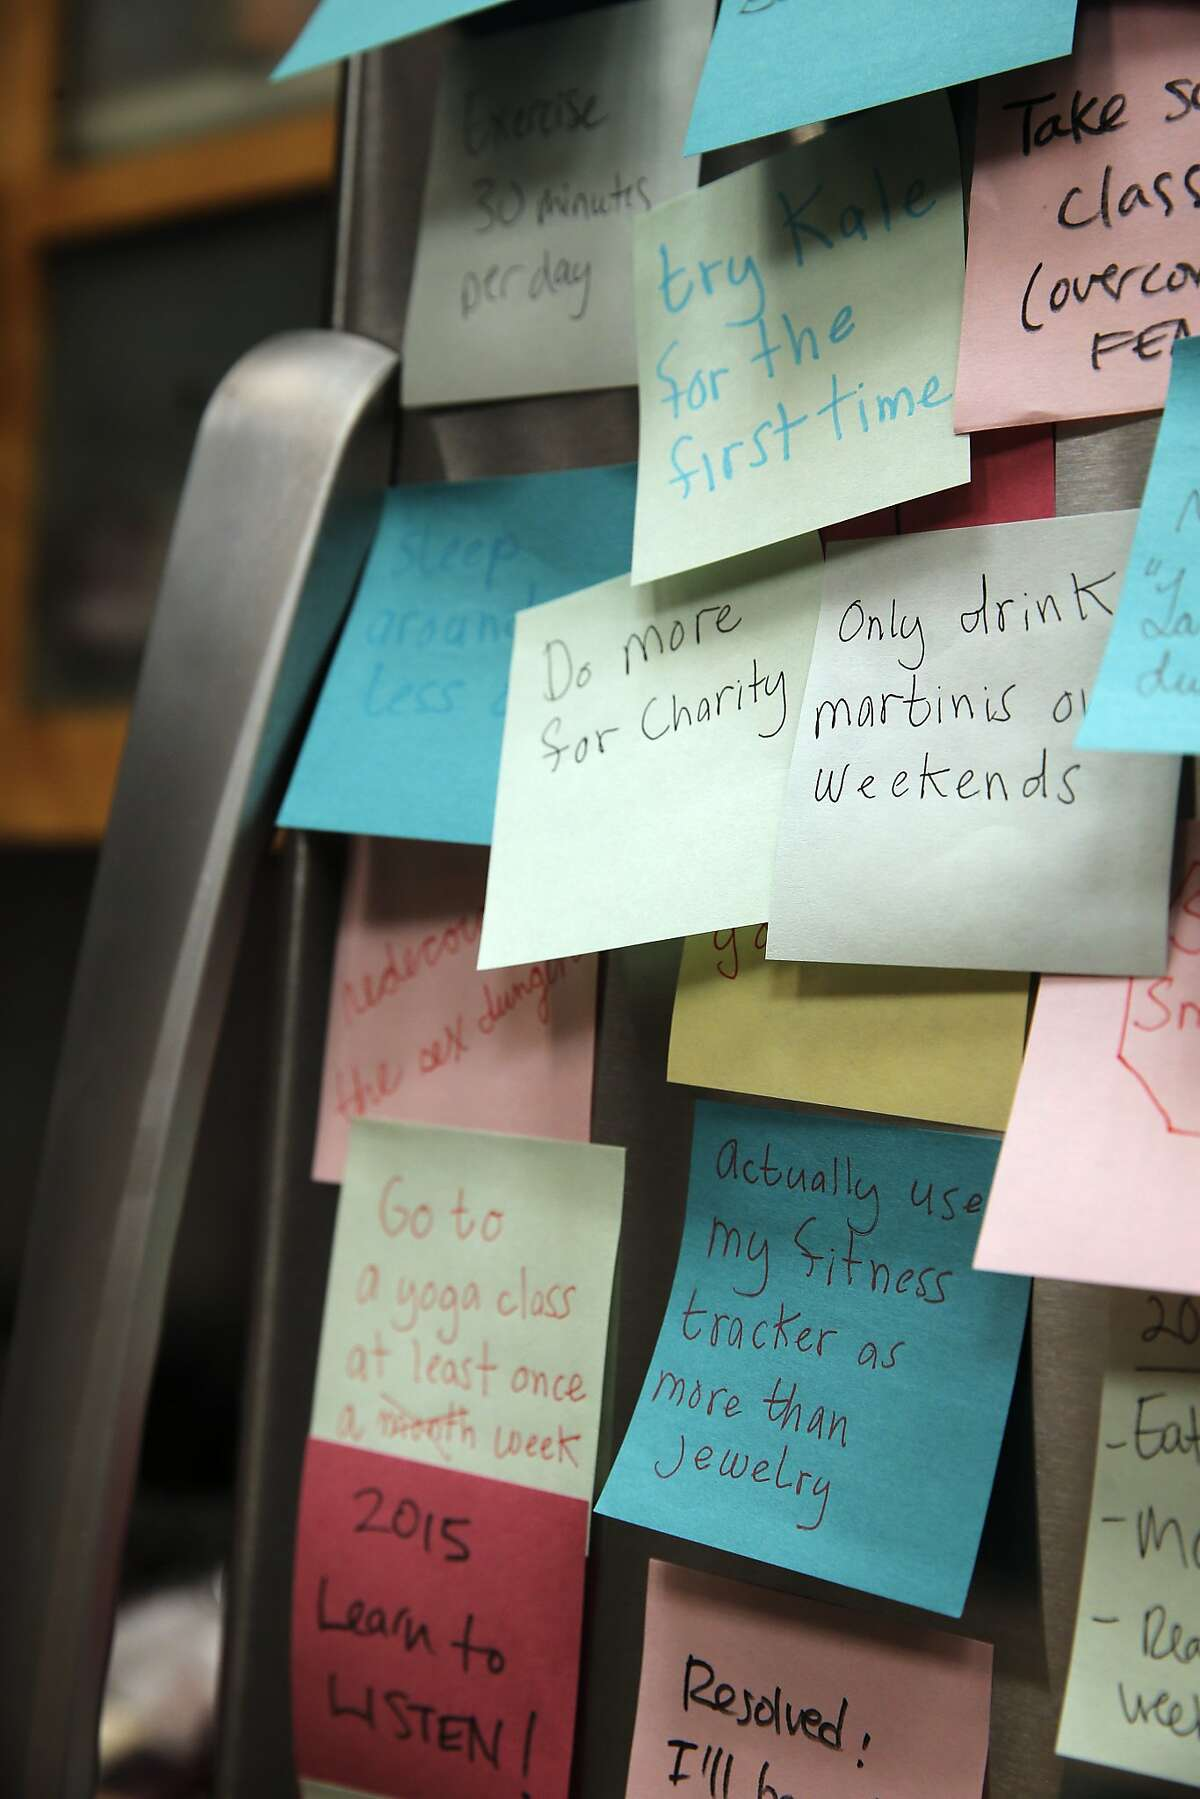 Photo illustration of post-it notes with New Year's resolutions in San Francisco, Calif., on Wednesday, December 23, 2015.